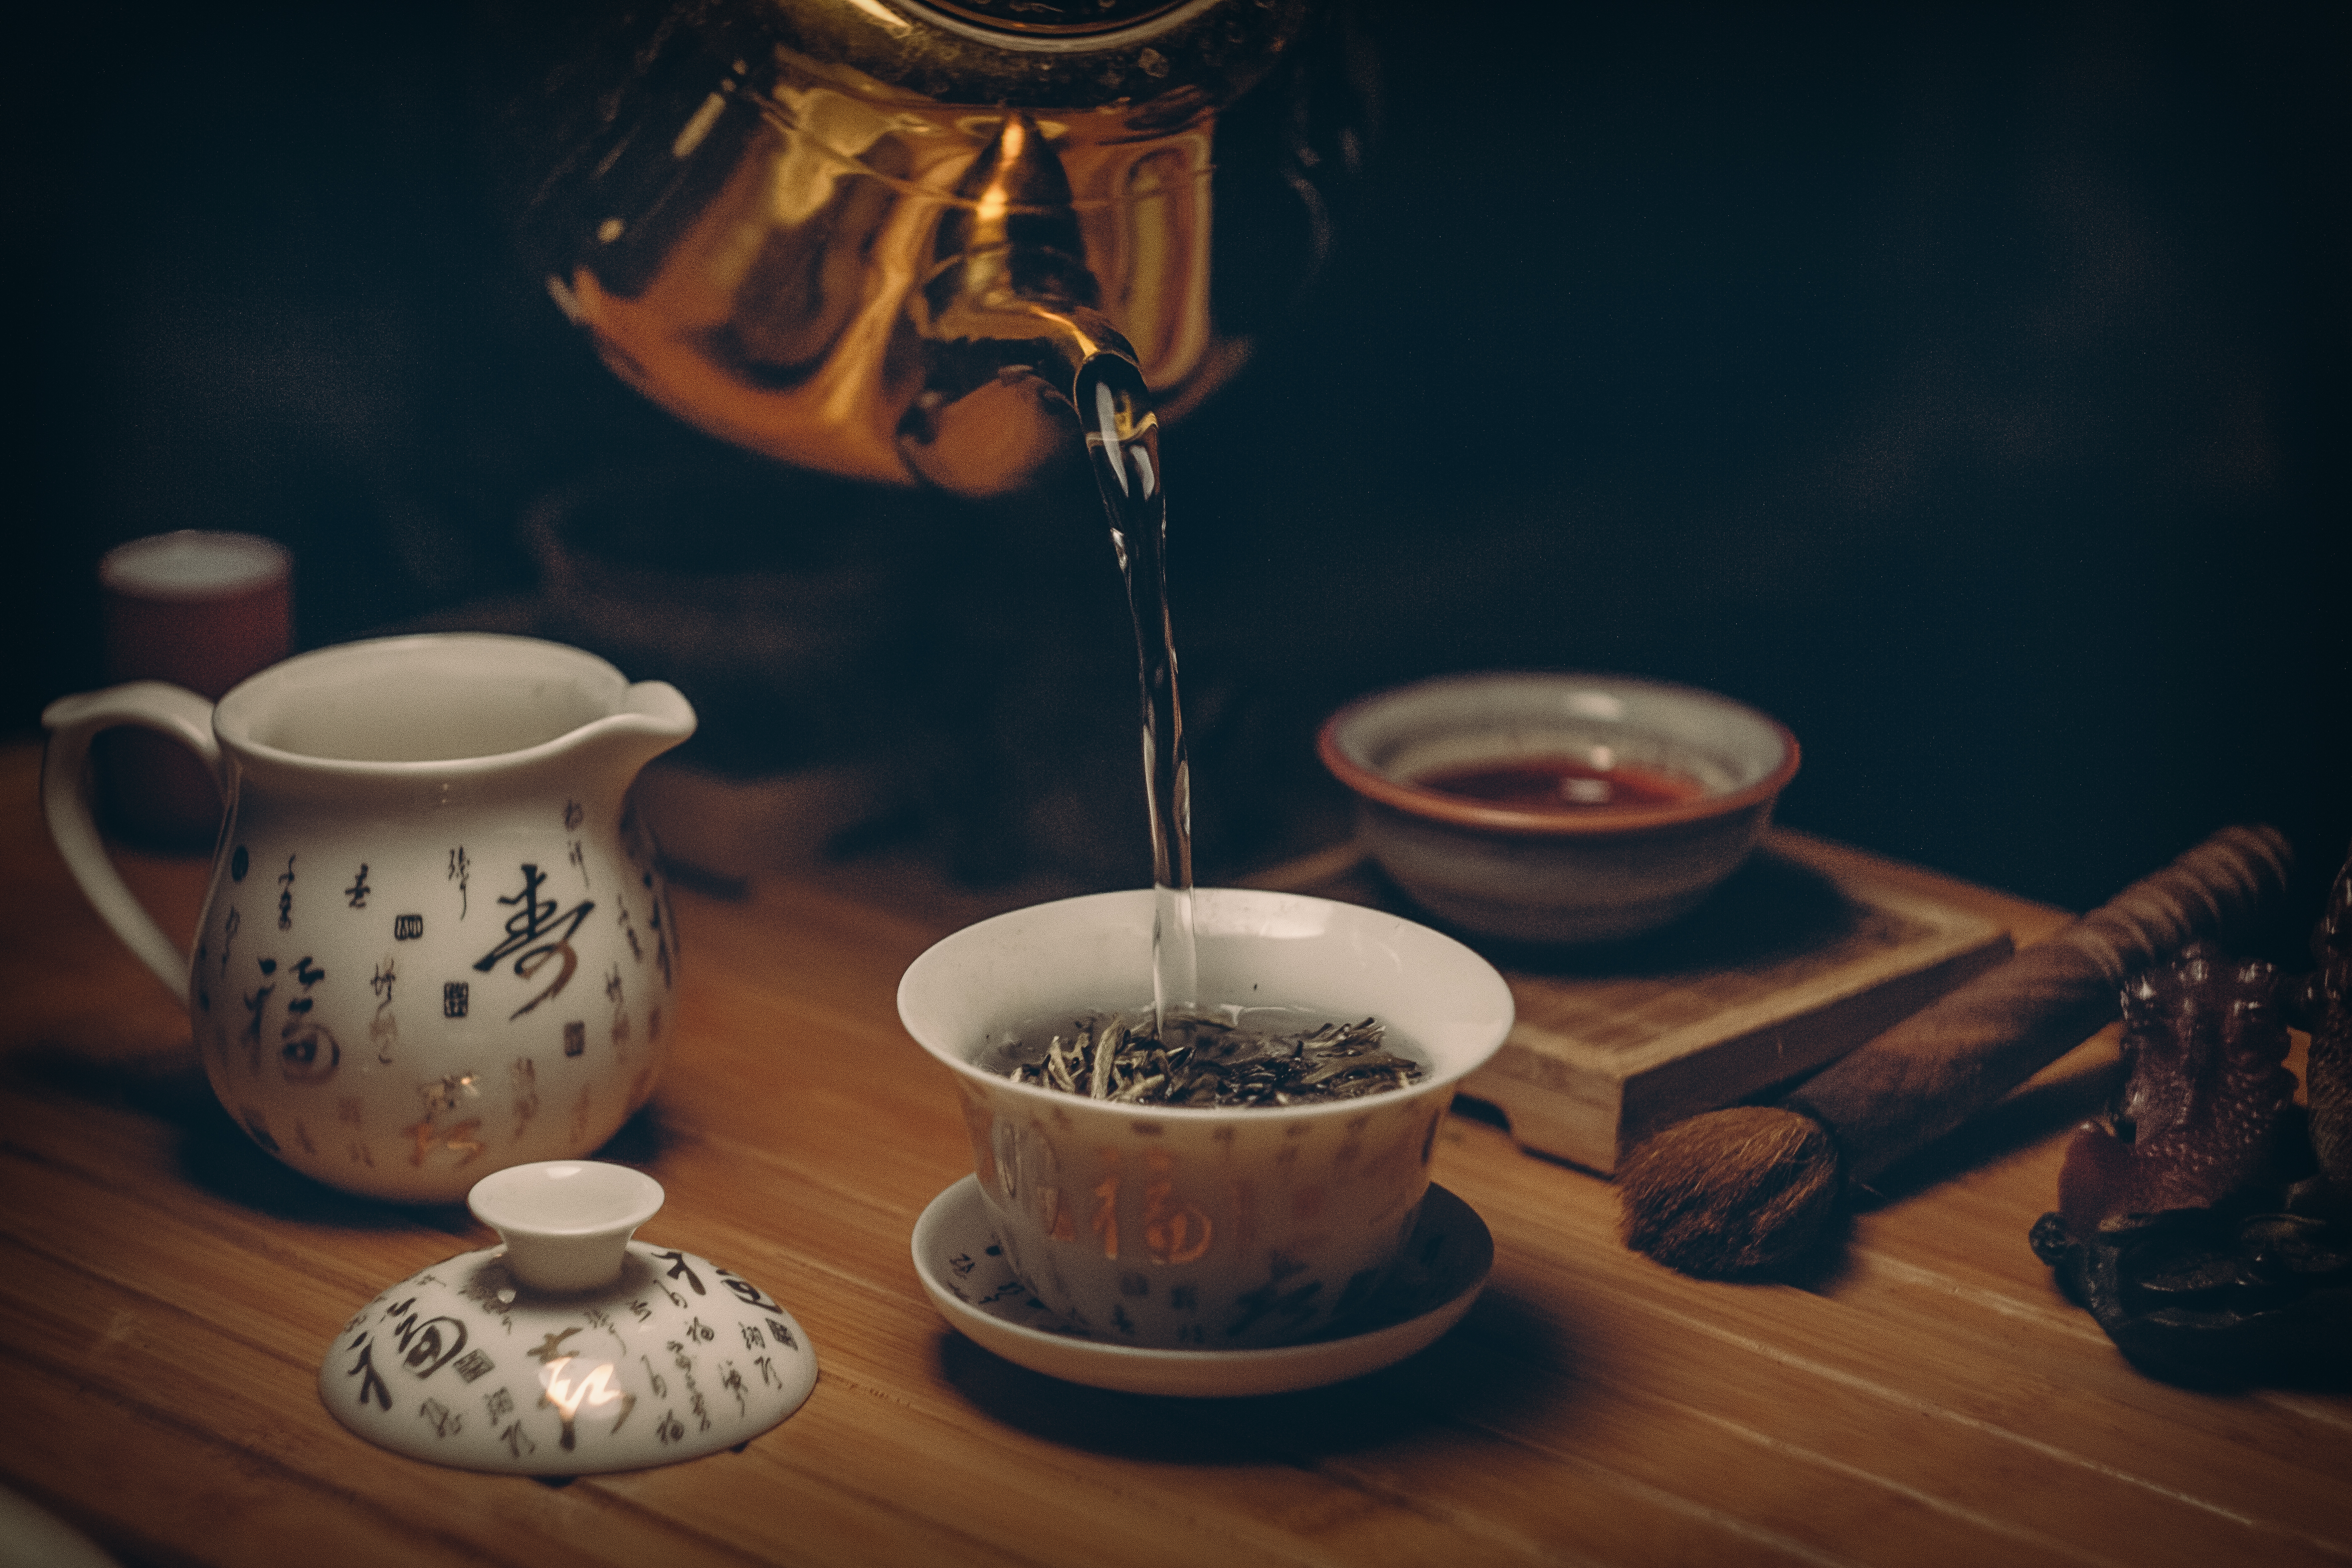 Photographystockphoto photographystockimages photographystock picture - Gold Kettle Pouring Hot Water On Cup Of Tea